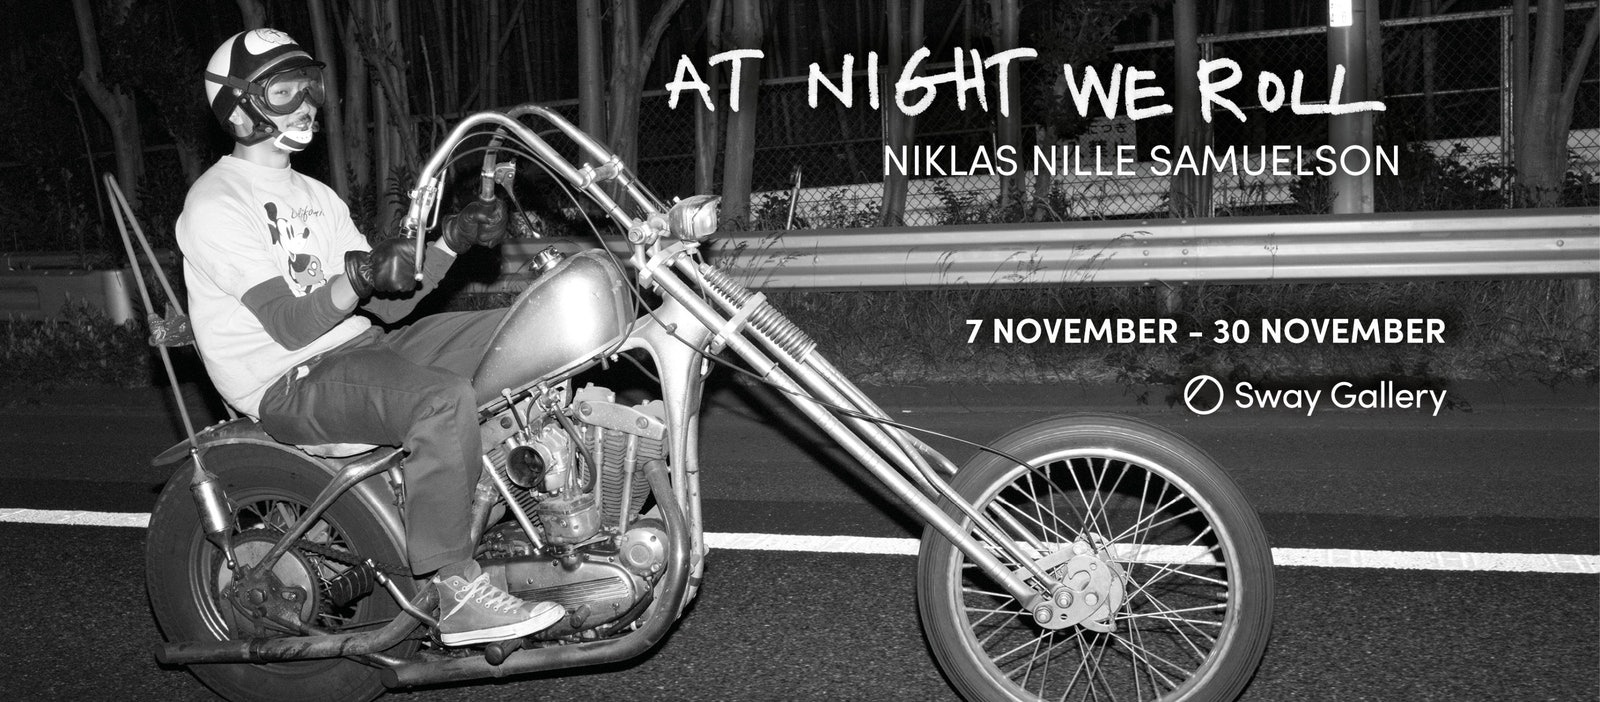 "NIKLAS NILLE SAMUELSON ""At Night We Roll"" // 7 November - 30 November 2019​"